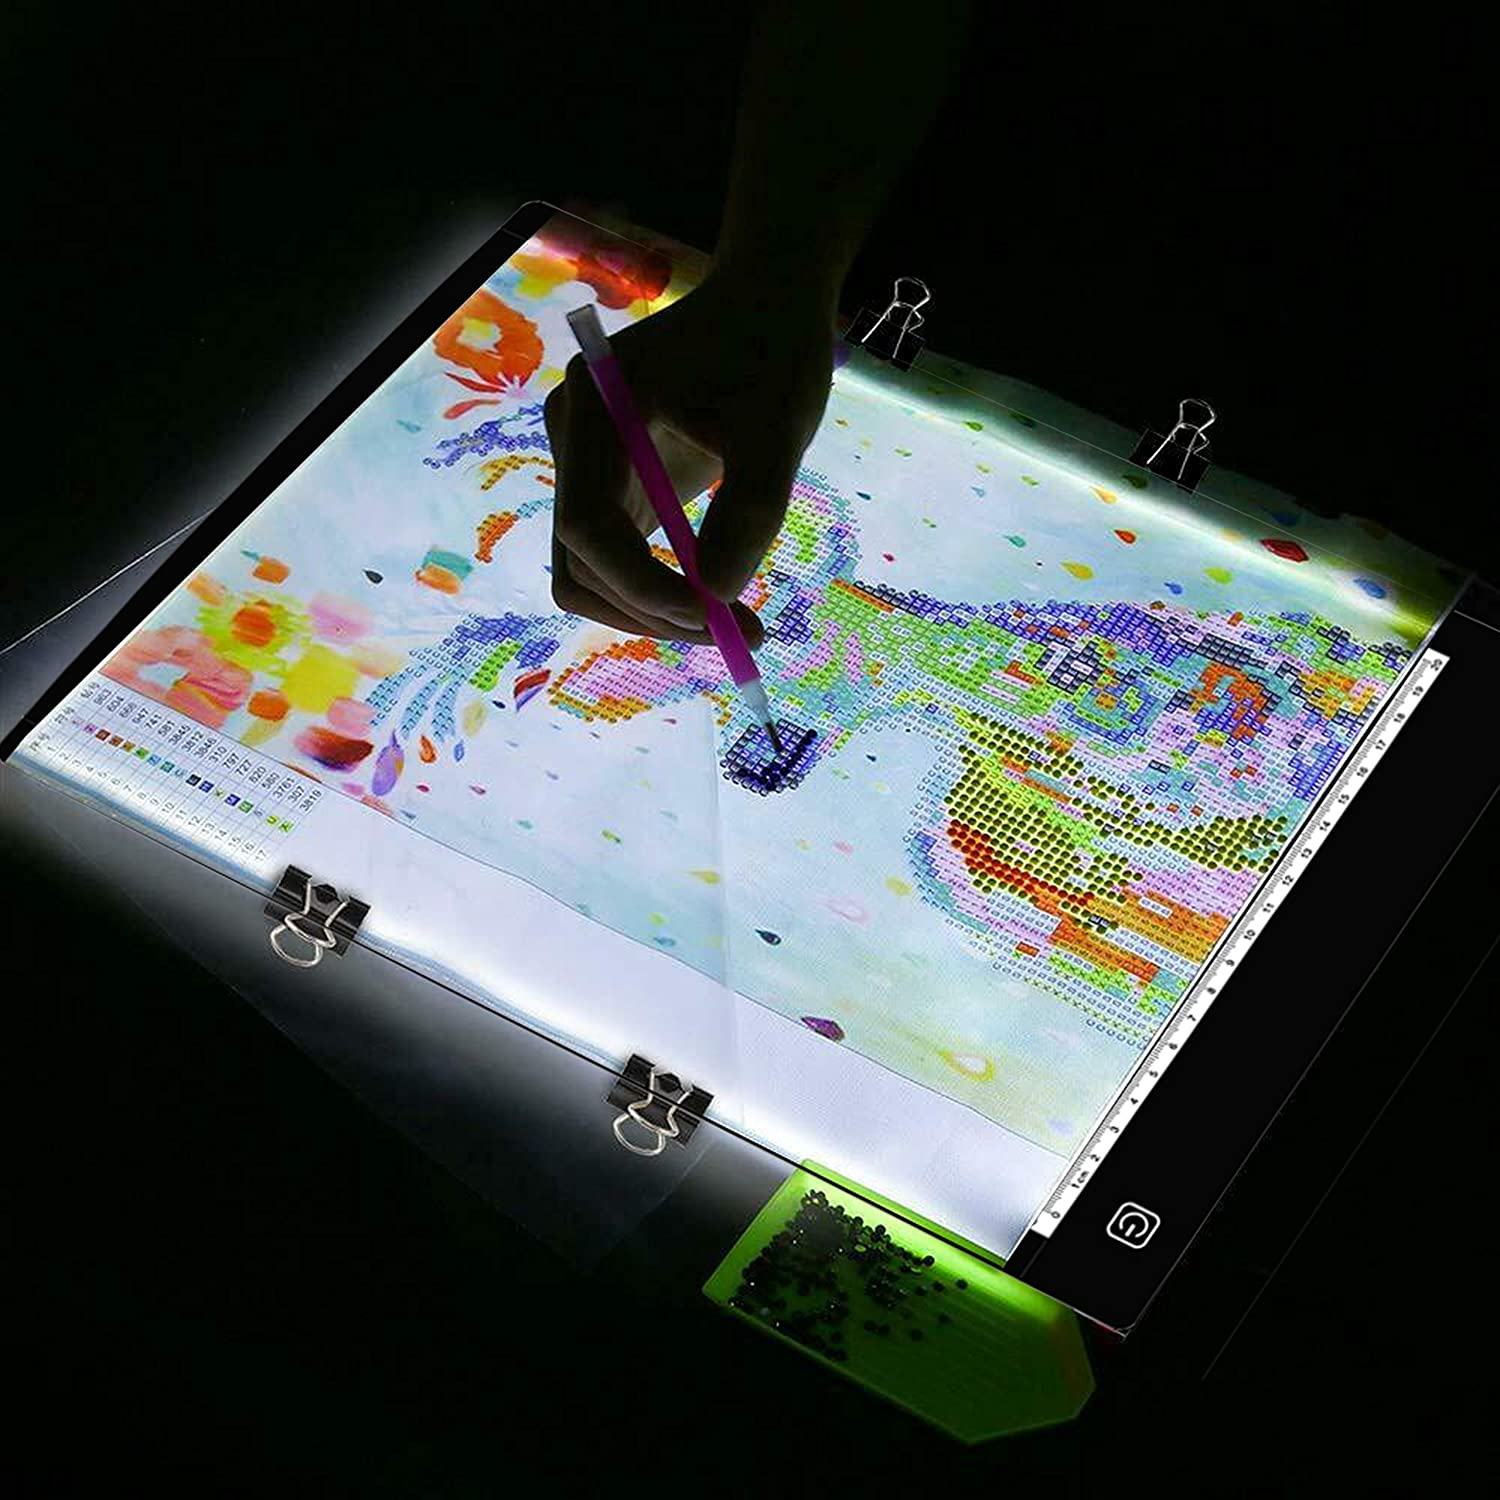 A4 Letter Paper Size Ultra-Thin Portable LED Light Art Tracing Box Light Tracer Pad Work w USB Power and Battery for 5D DIY Diamond Painting Artists Tracing Drawing Sketching Animation Black